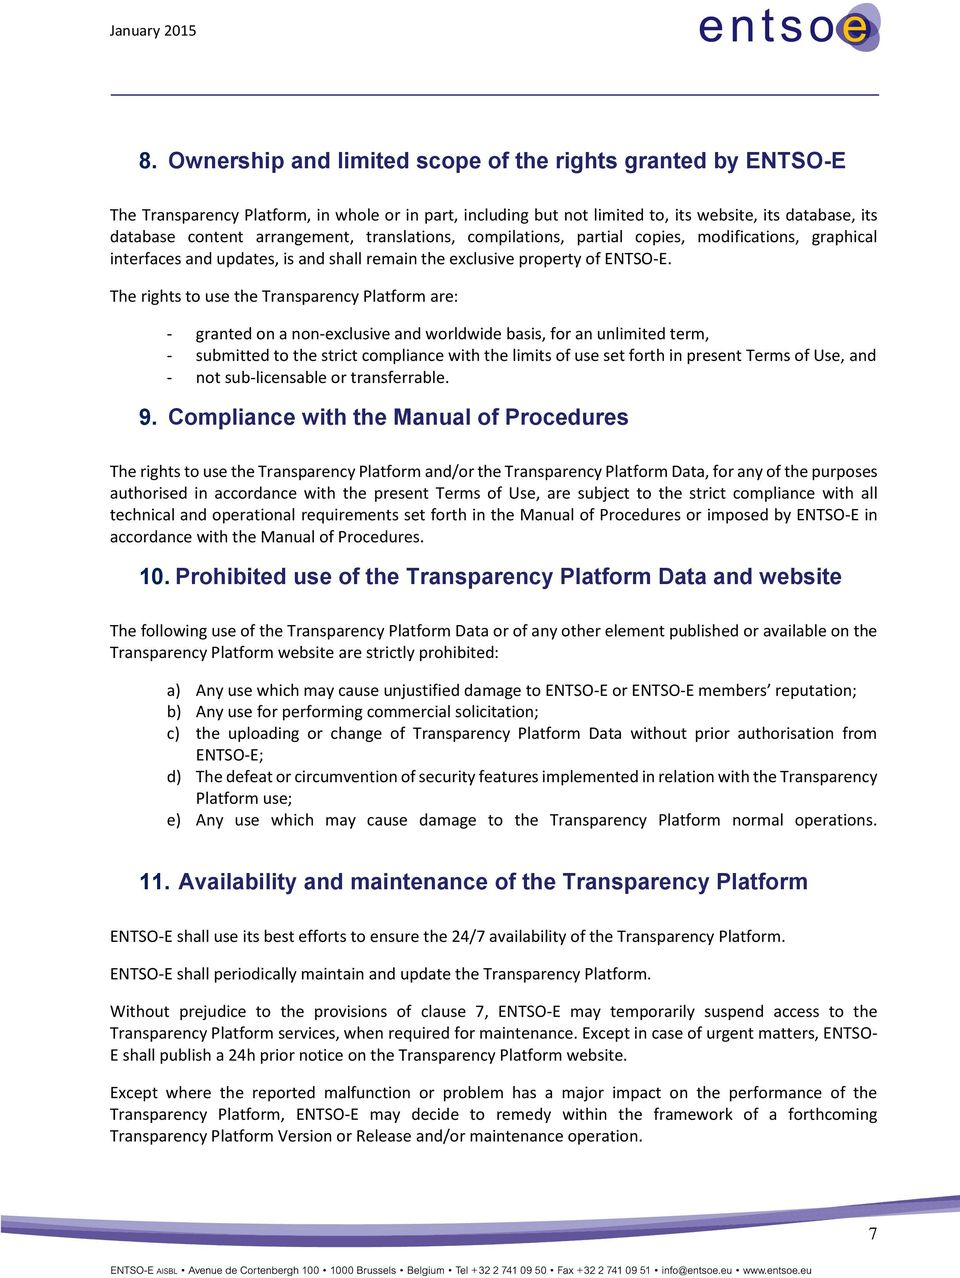 The rights to use the Transparency Platform are: - granted on a non-exclusive and worldwide basis, for an unlimited term, - submitted to the strict compliance with the limits of use set forth in